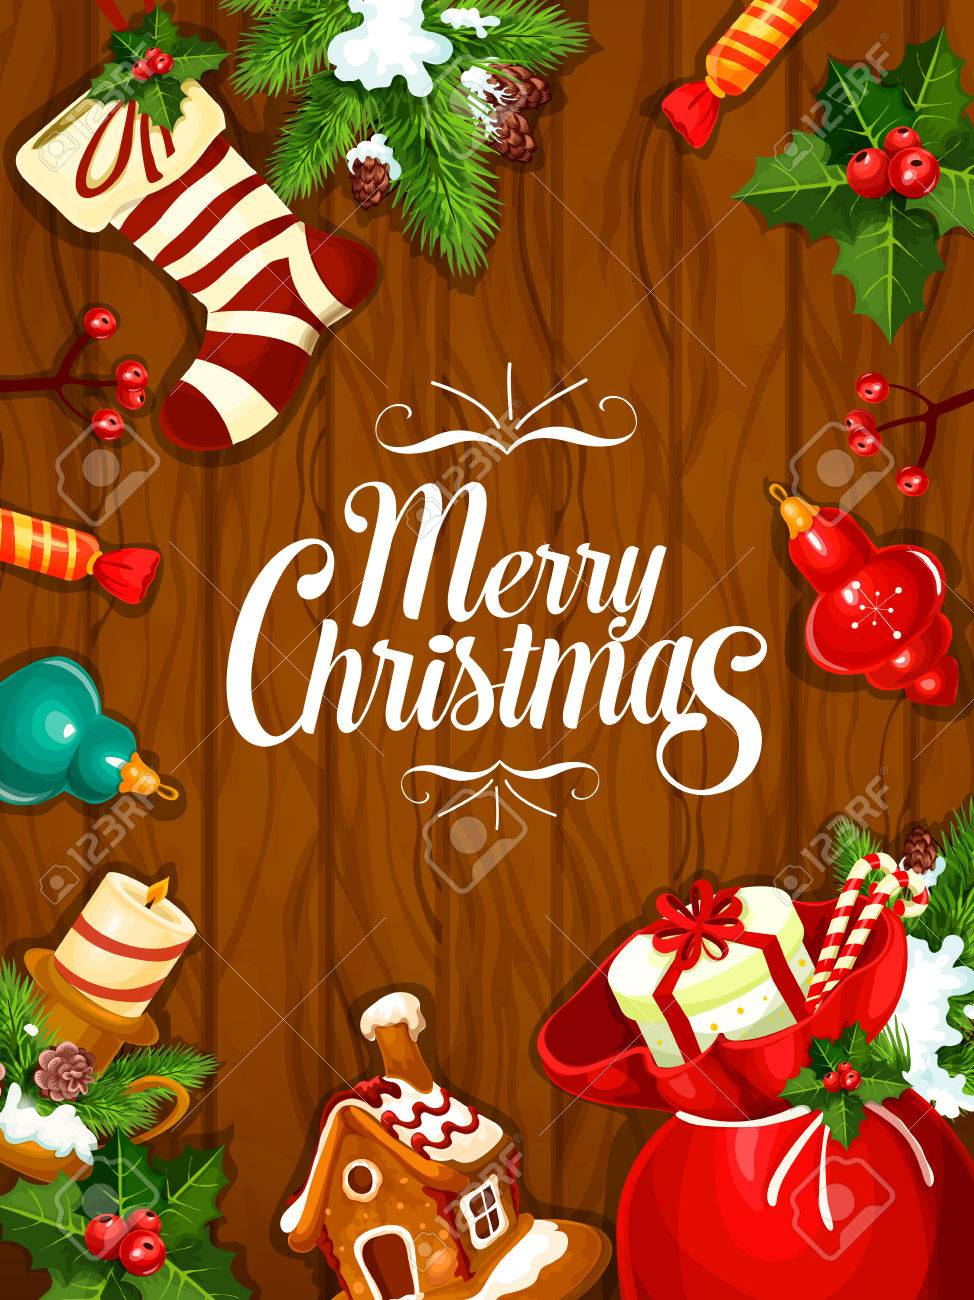 Merry Christmas Greeting Poster Card Of Christmas Tree Ornaments